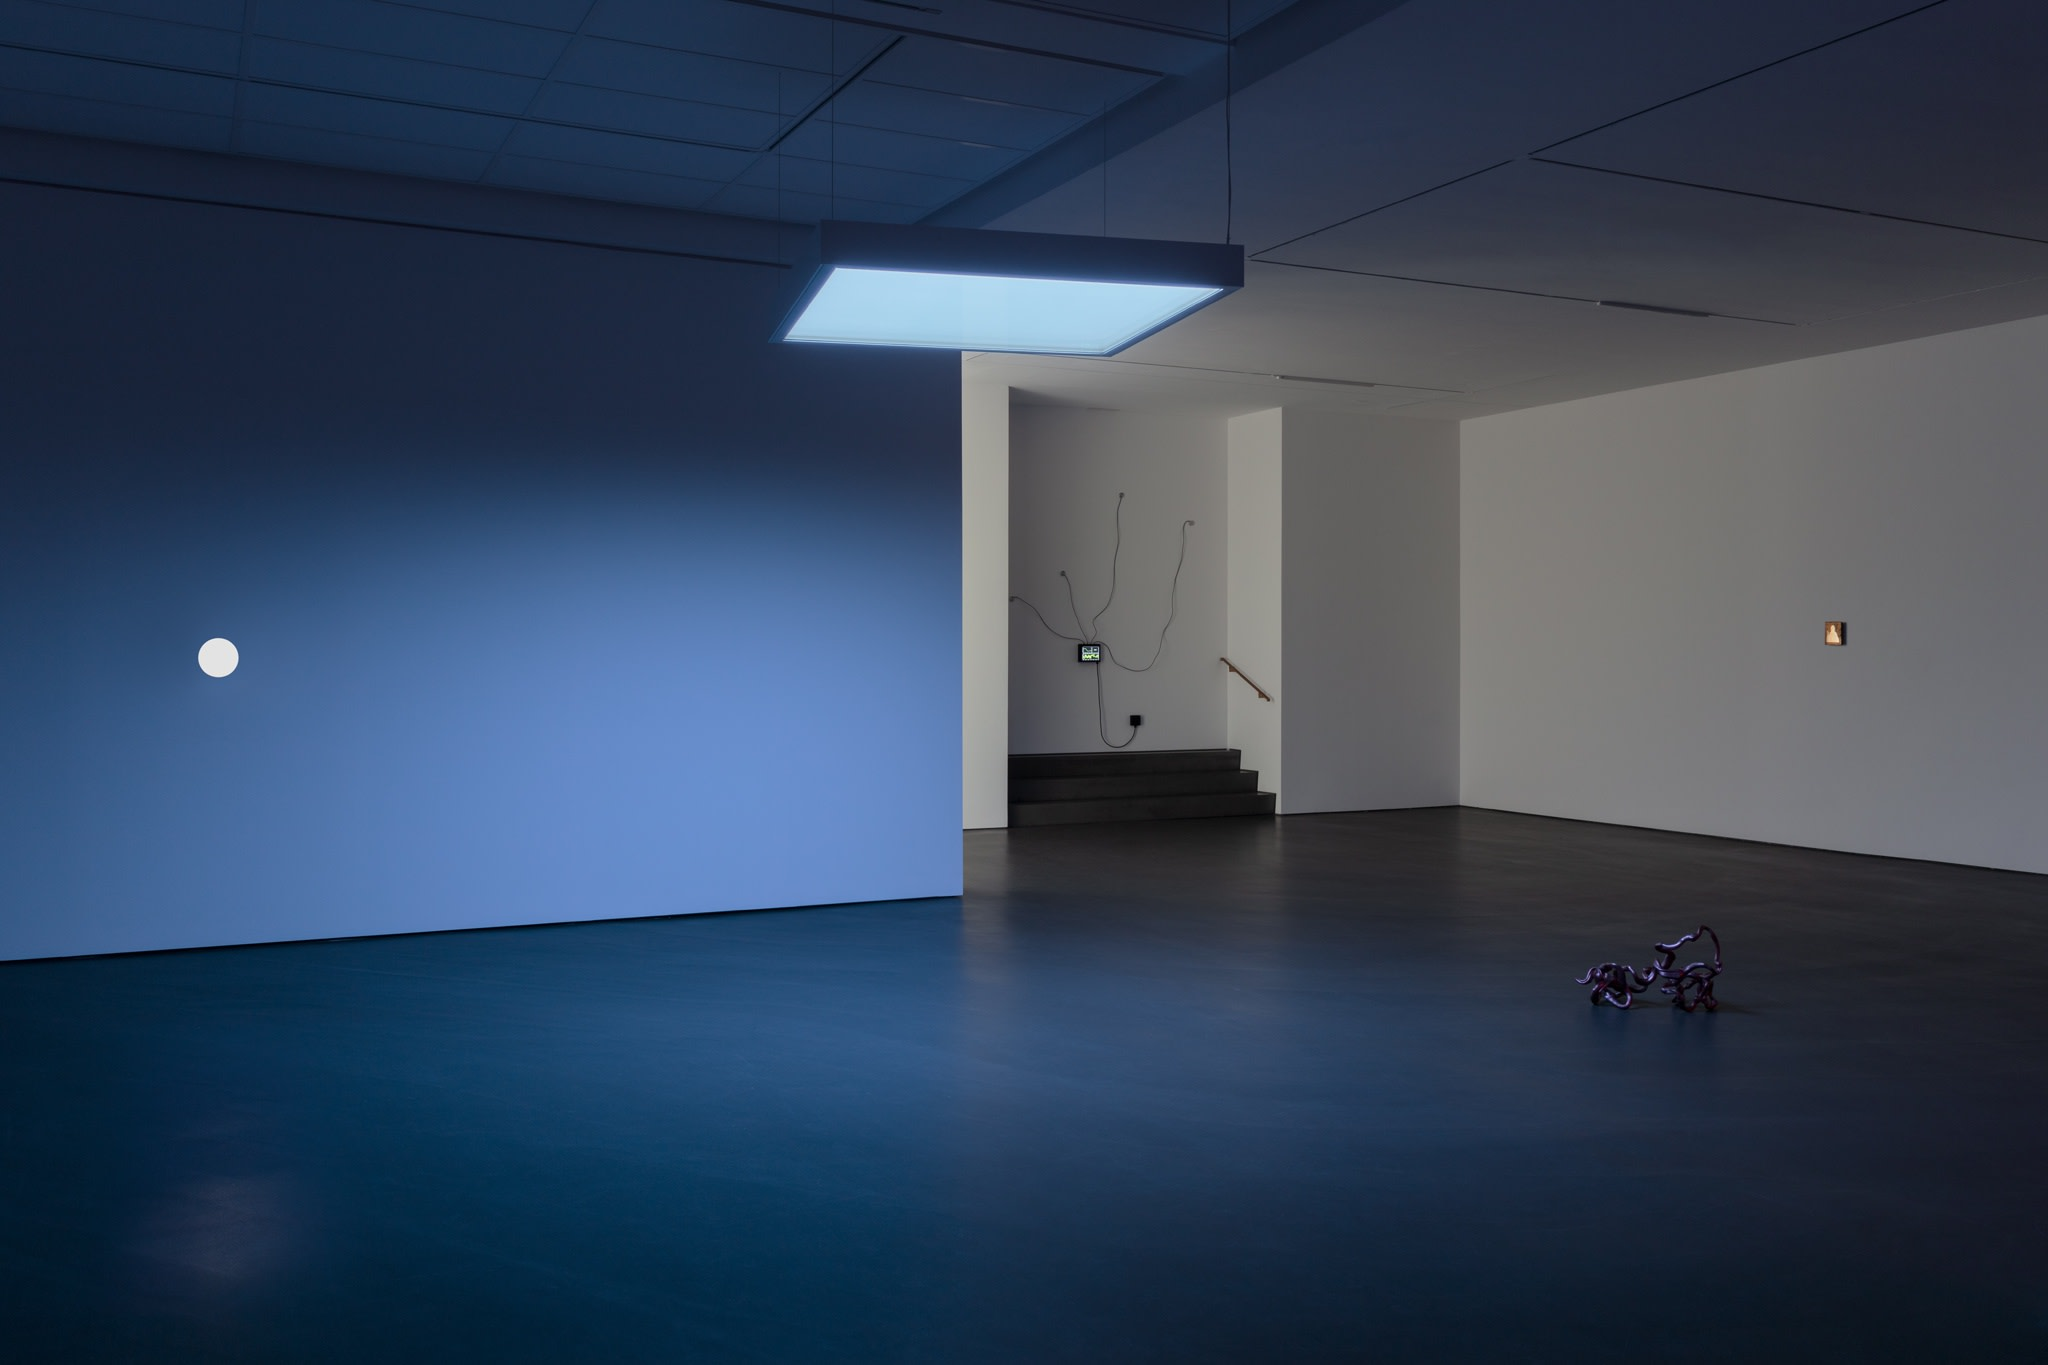 Exhibition view: Etienne Chambaud, Inexistence, Esther Schipper, Berlin 2021. Photo © Andrea Rossetti